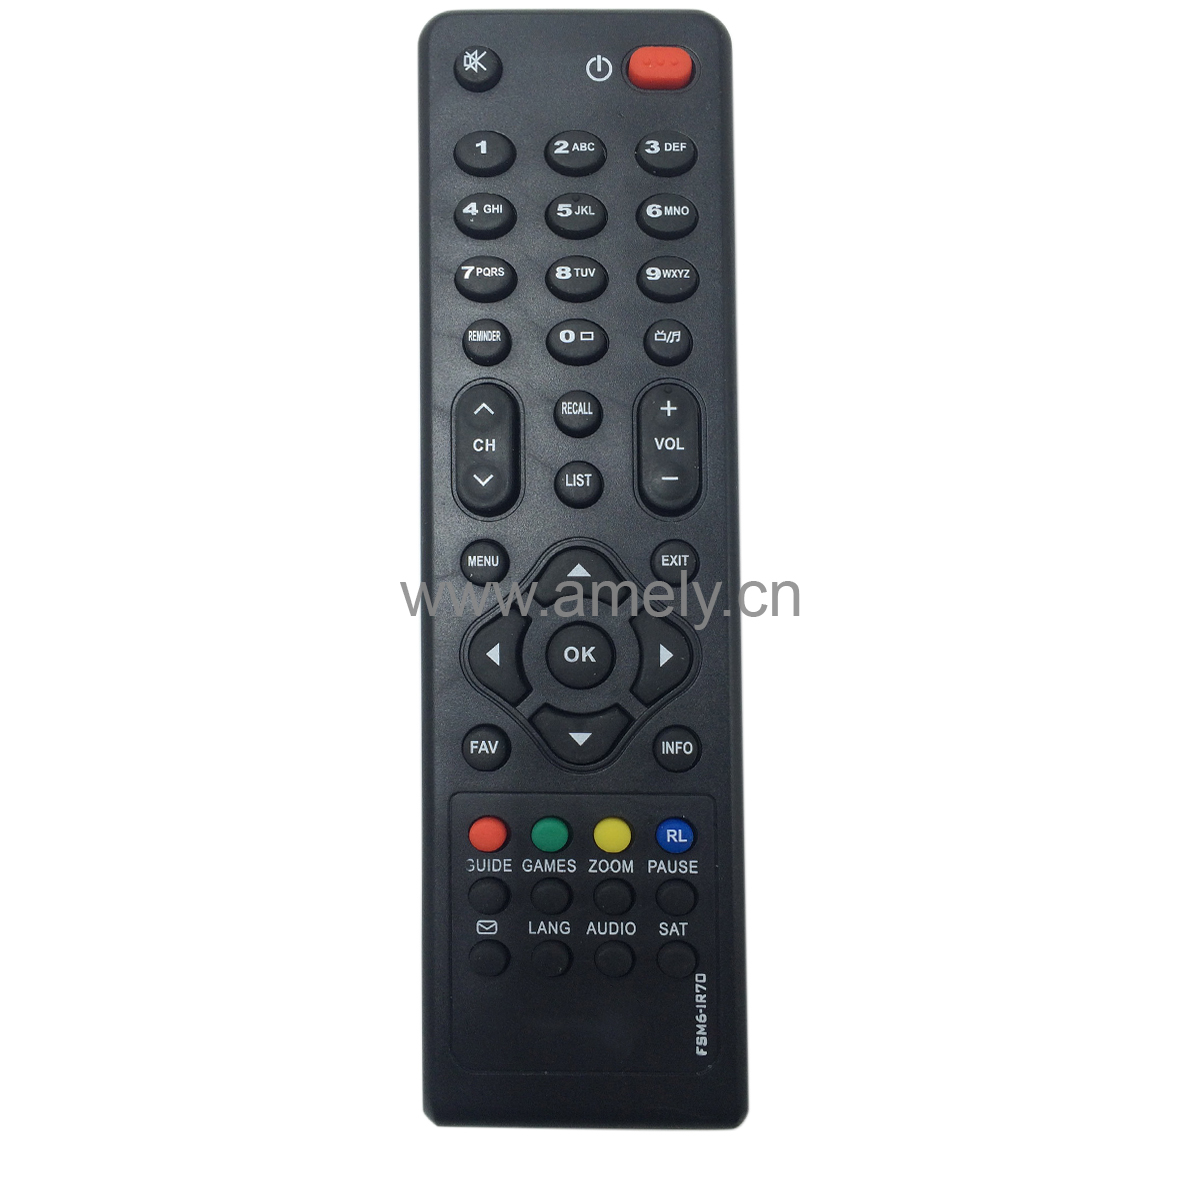 FSM6-IR70 Use for DIALOG TELEVISION TV remote control